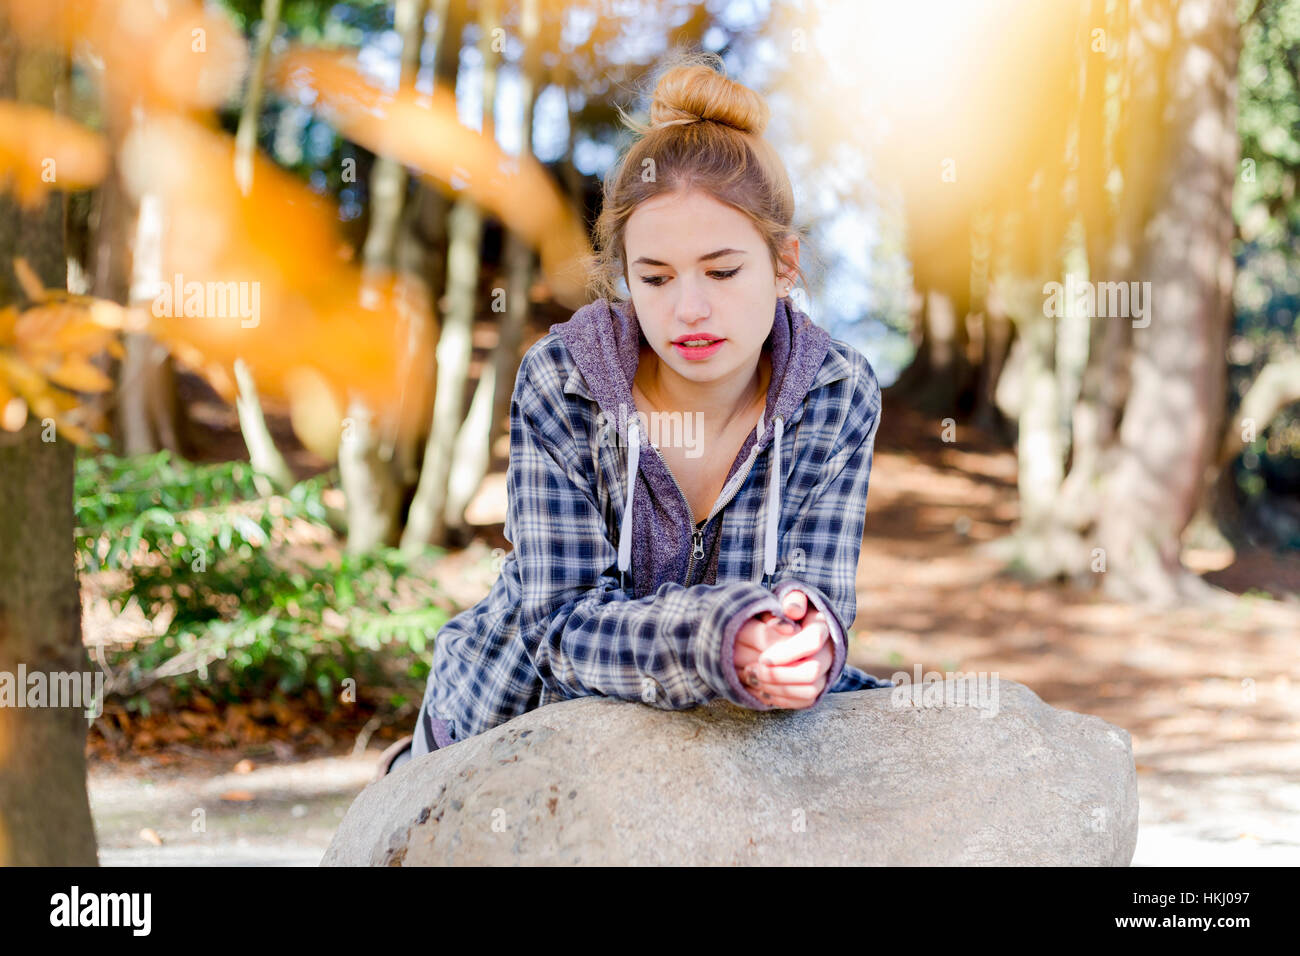 This young teenage girl hangs out alone in a park, sitting on a rock in a thoughtful disengaged position thinking - Stock Image